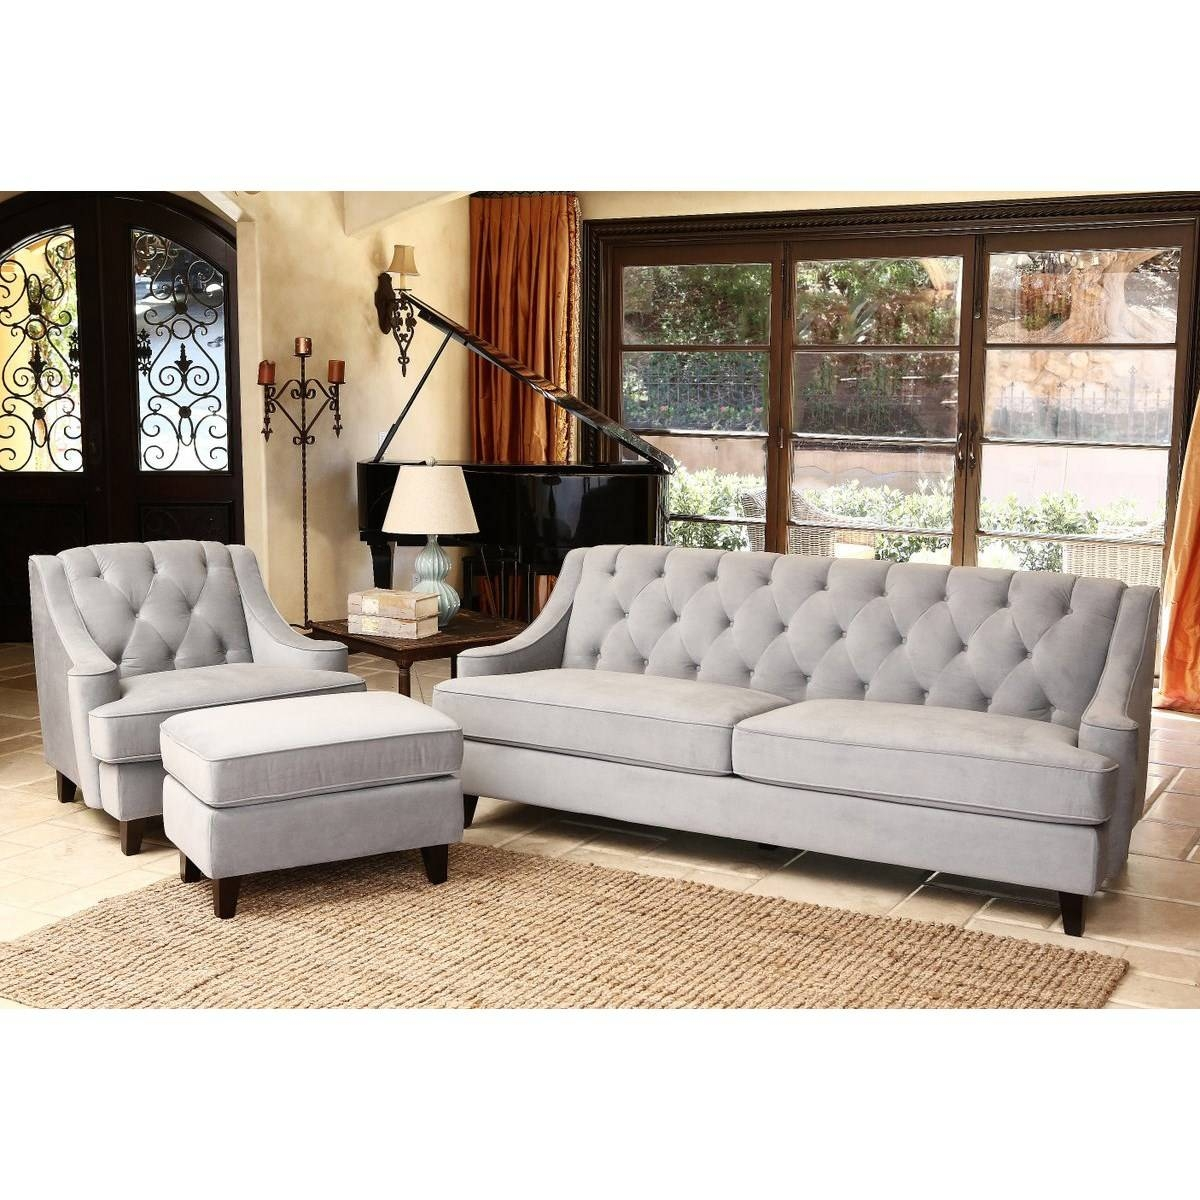 Abbyson Living Rl-1450-Bge-3 Emily Velvet Fabric Tufted Sofa regarding Abbyson Living Sofas (Image 4 of 15)